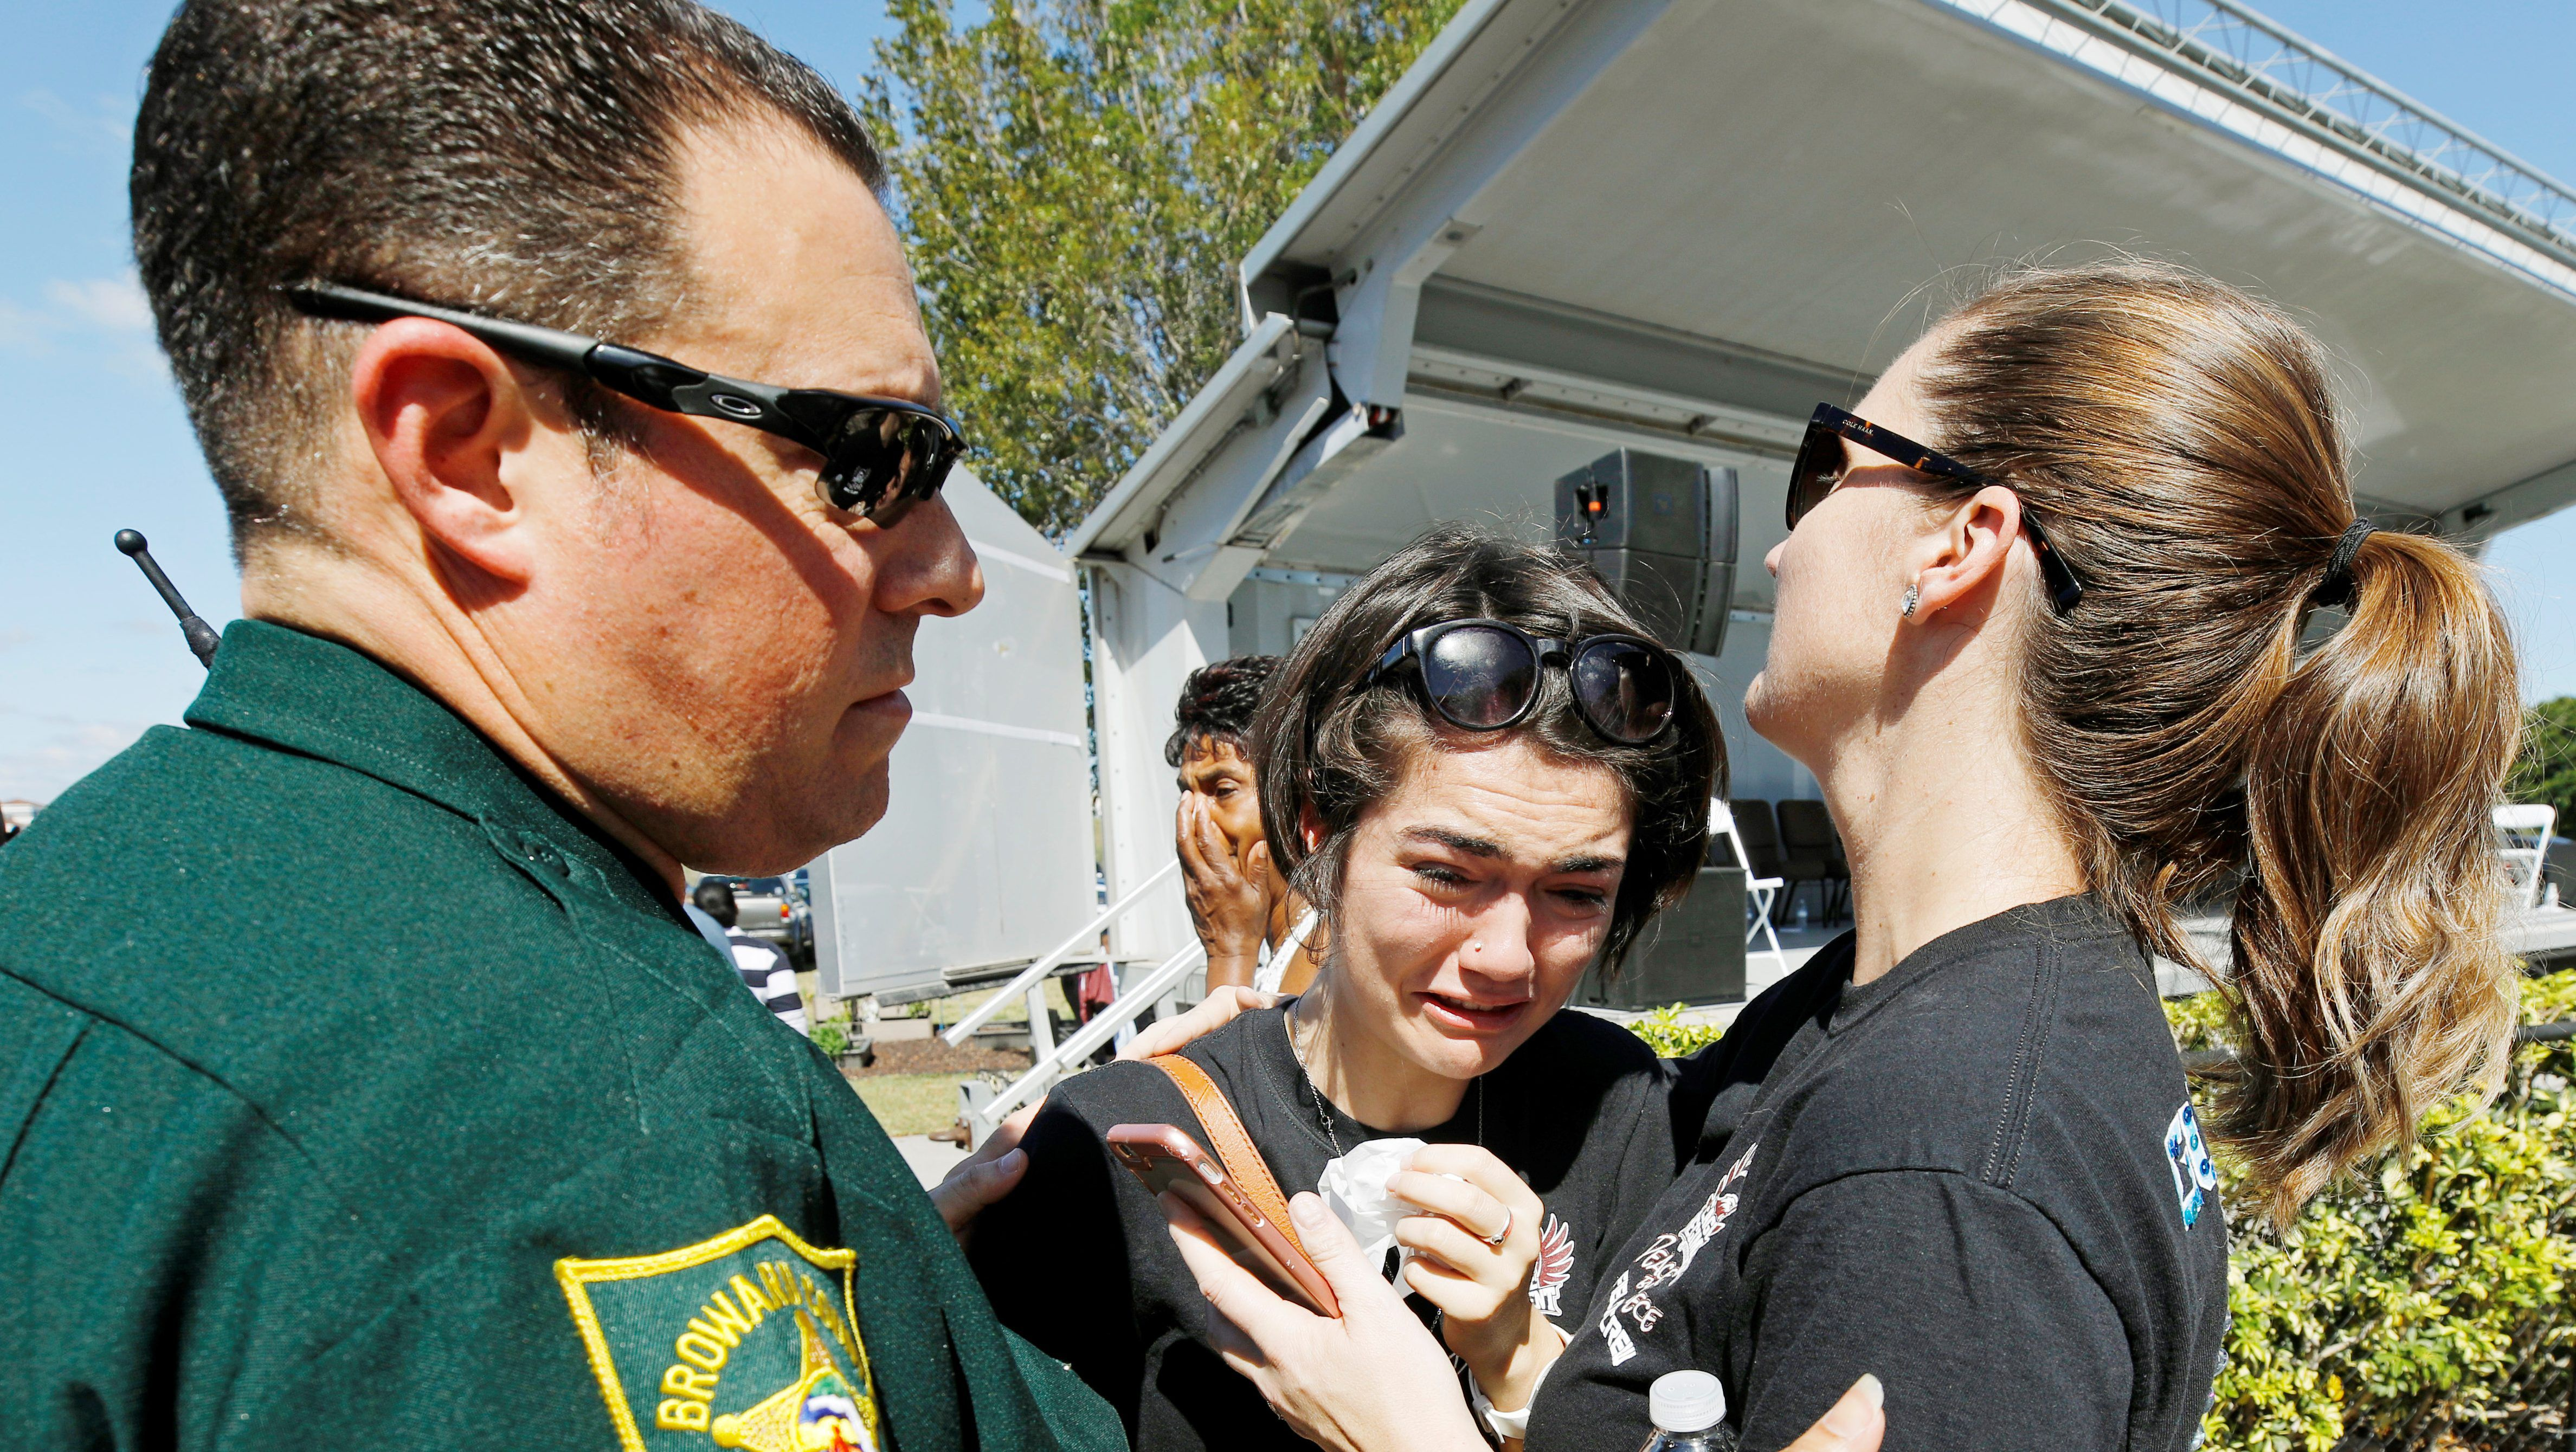 """In the wake of the Parkland, Florida shooting, outrage has fueled national conversation as grieving family, friends, and viewers alike learn of the FBI's knowledge of """"warning signs"""" regarding shooter Nikolas Cruz. One of those voicesadding his opinionto the conversation is that of Republican Sen. James Lankford, who stated that every sign of Cruz's instability …"""